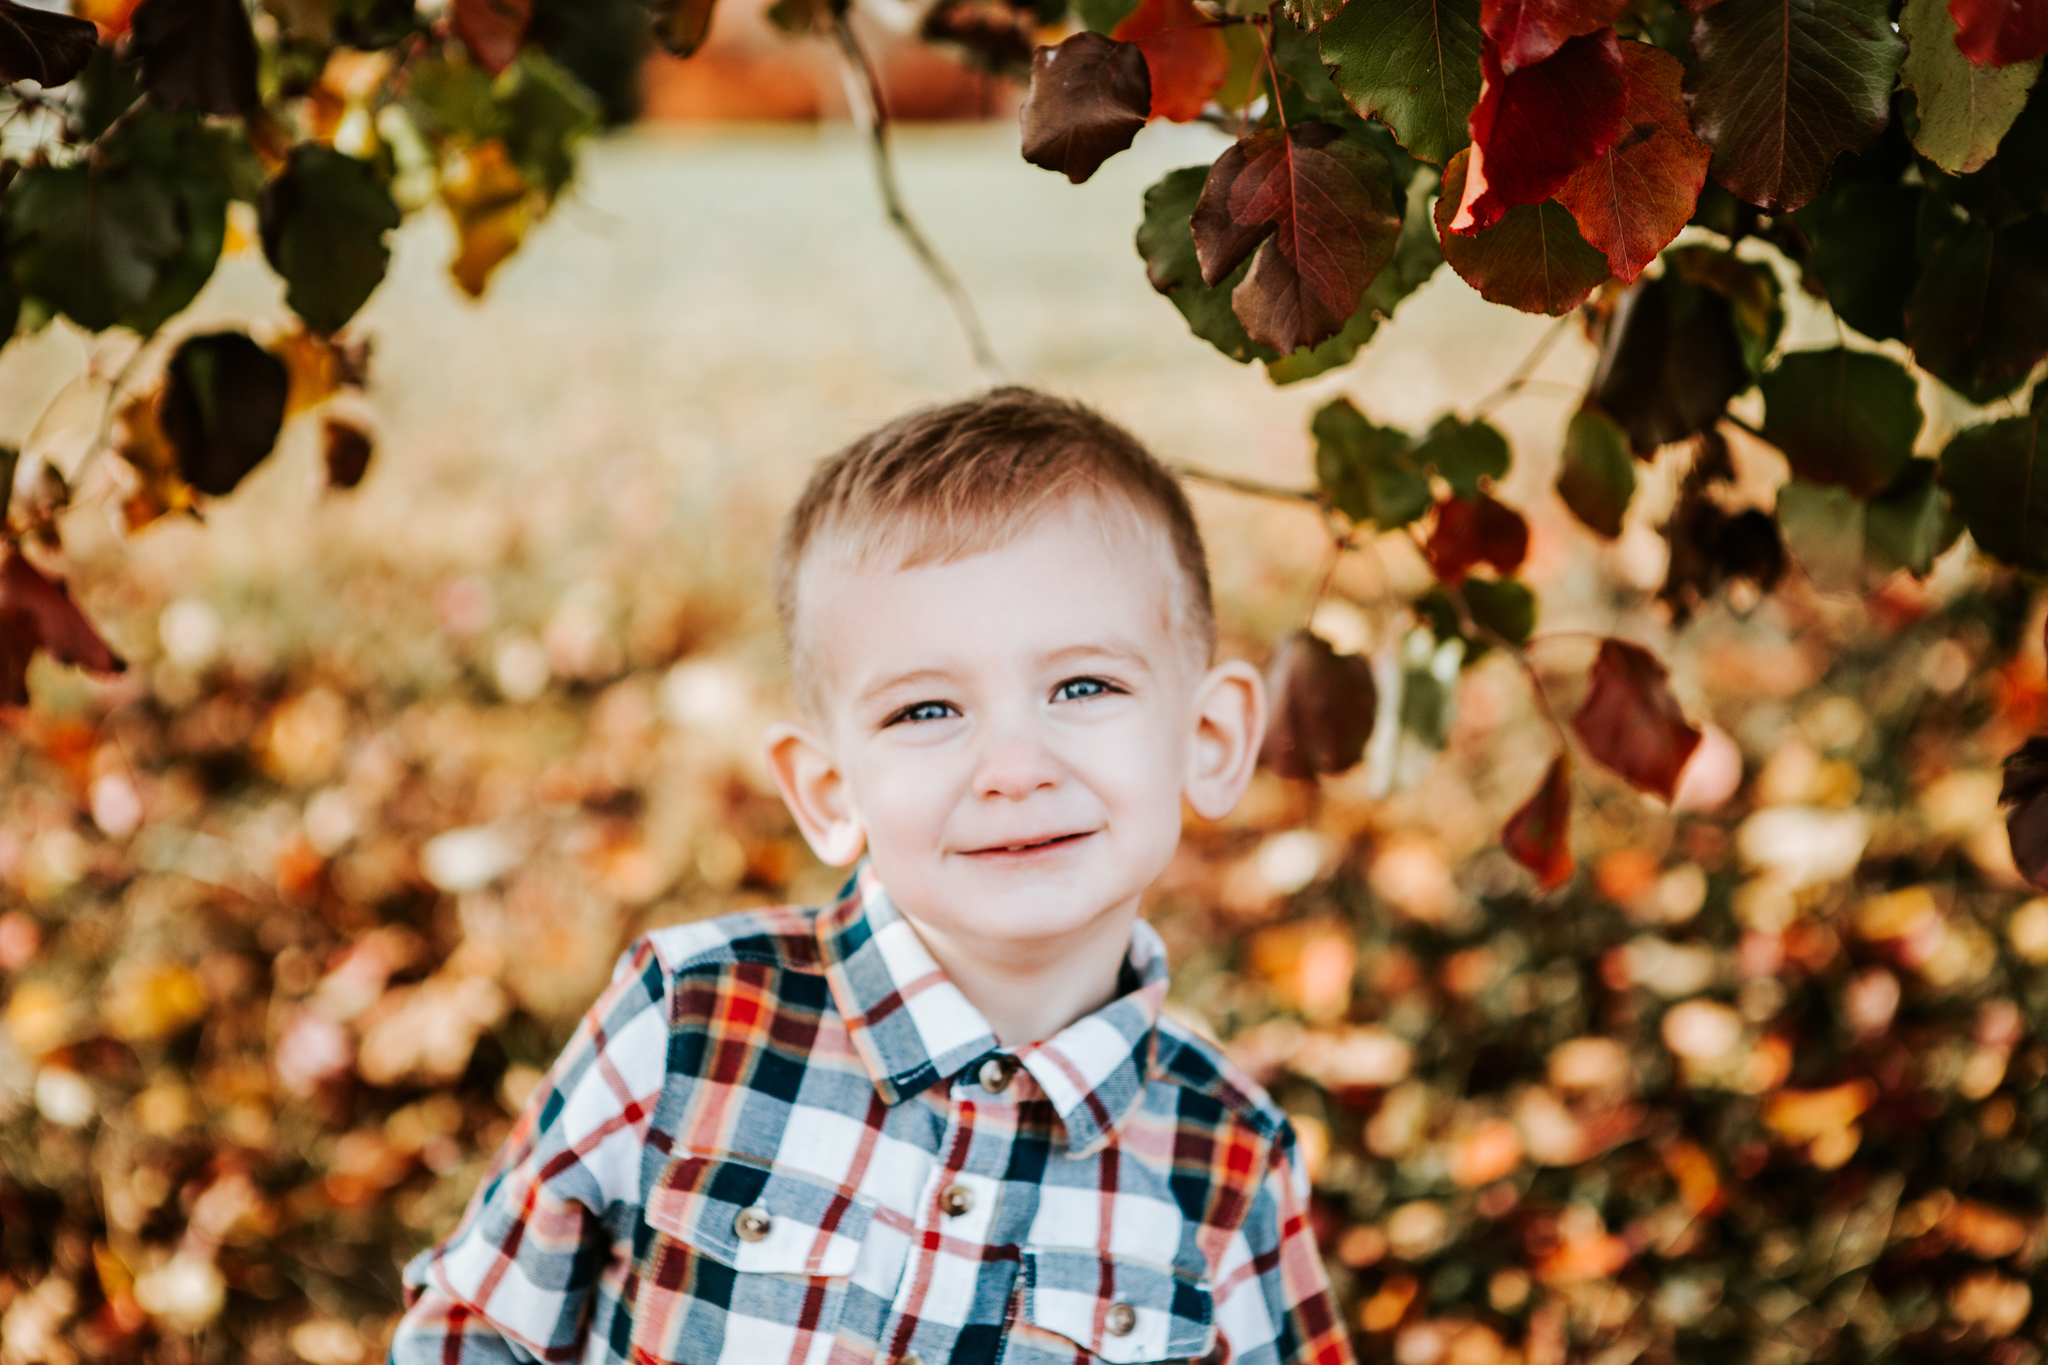 Richmond Kentucky Family Photographer - Ariana Jordan Photography -31.jpg